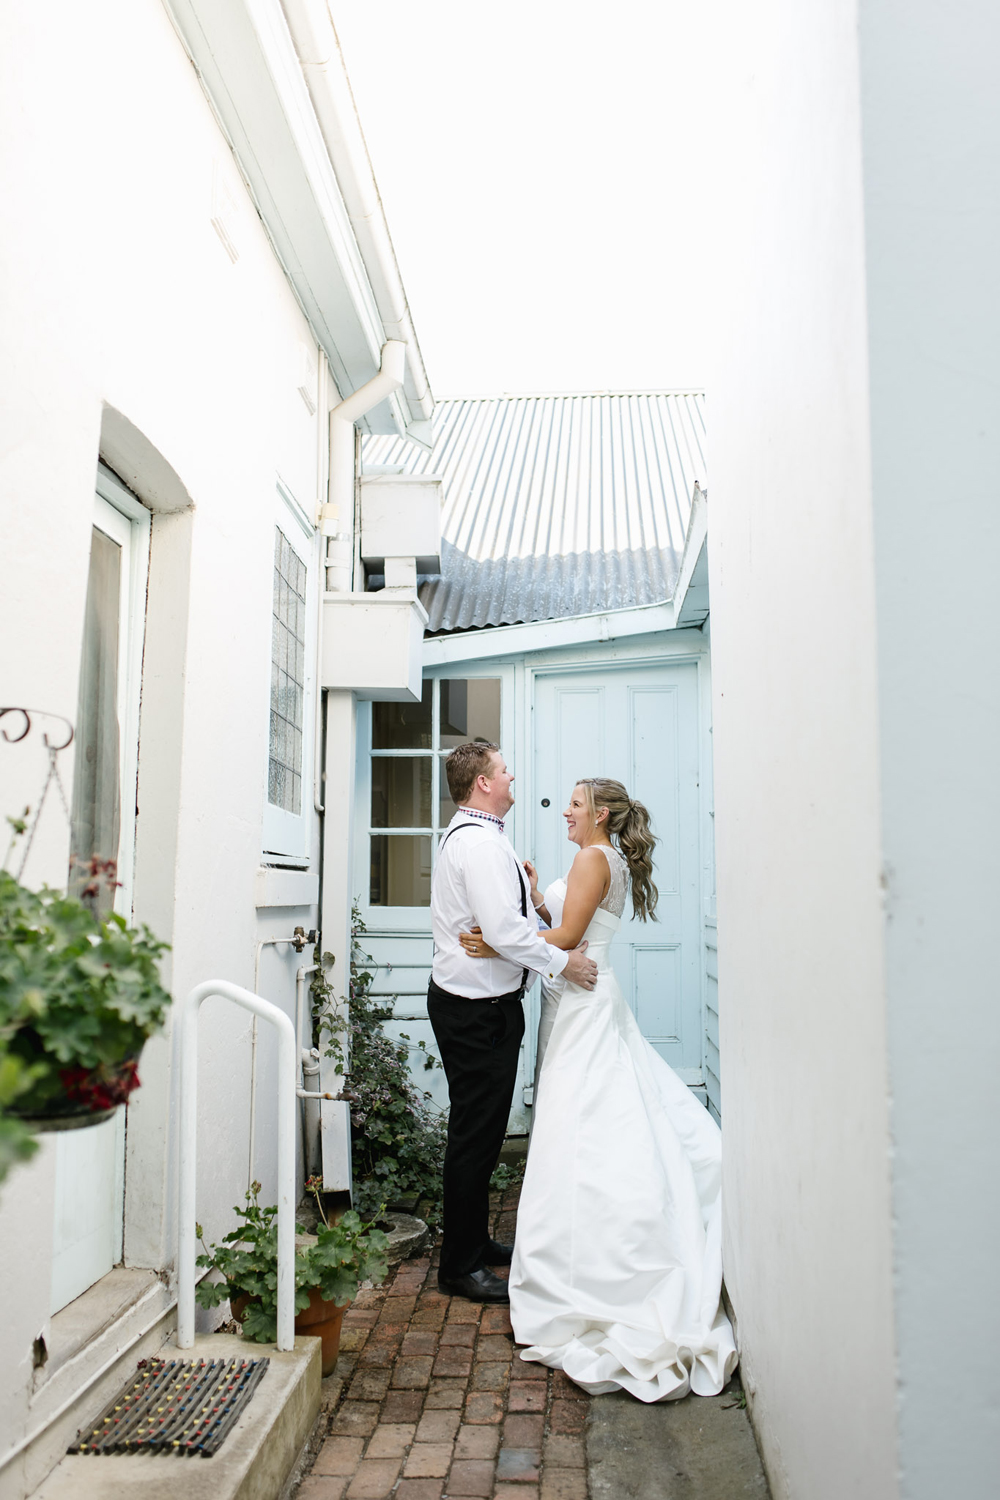 674-Byron-Bay-Wedding-Photographer-Carly-Tia-Photography.jpg